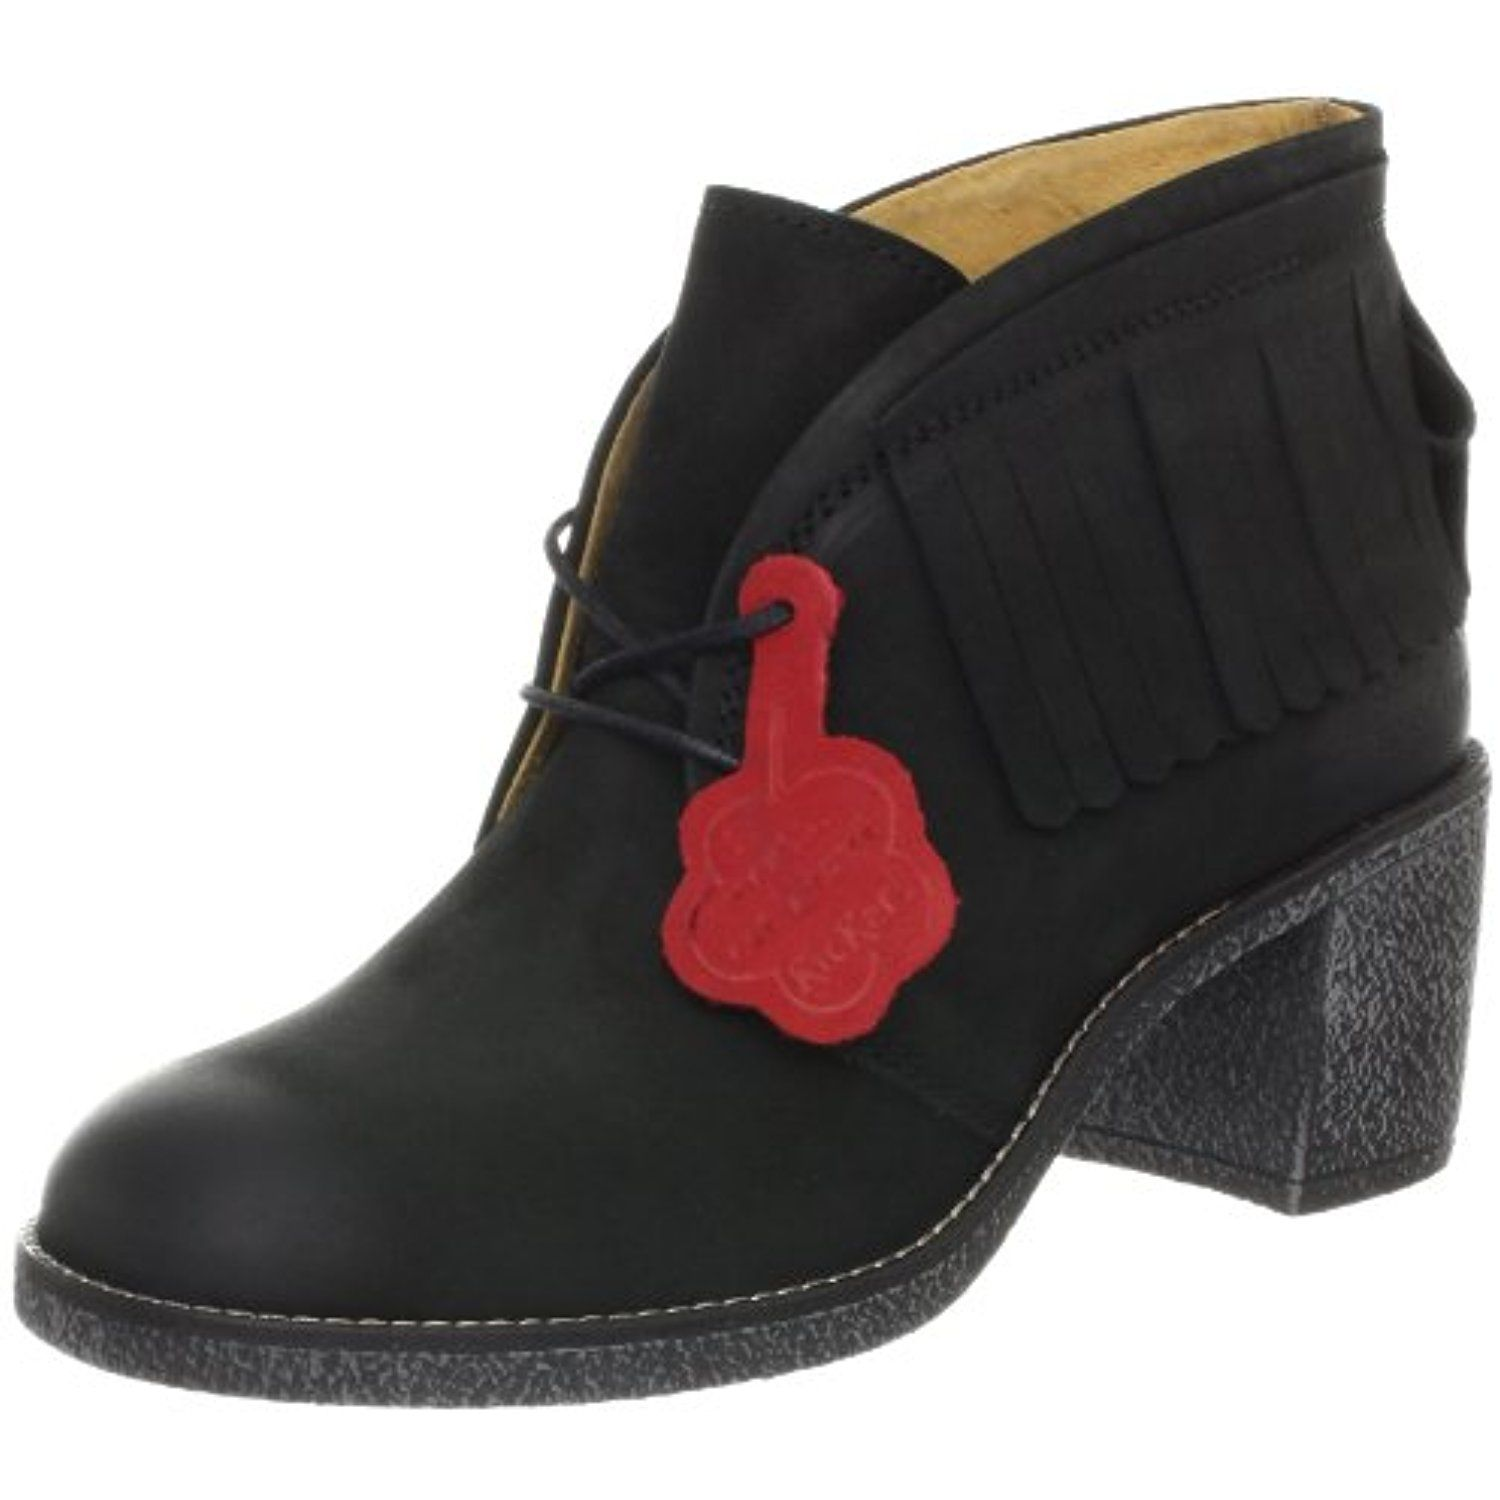 Women's Kipatch Ankle Boot